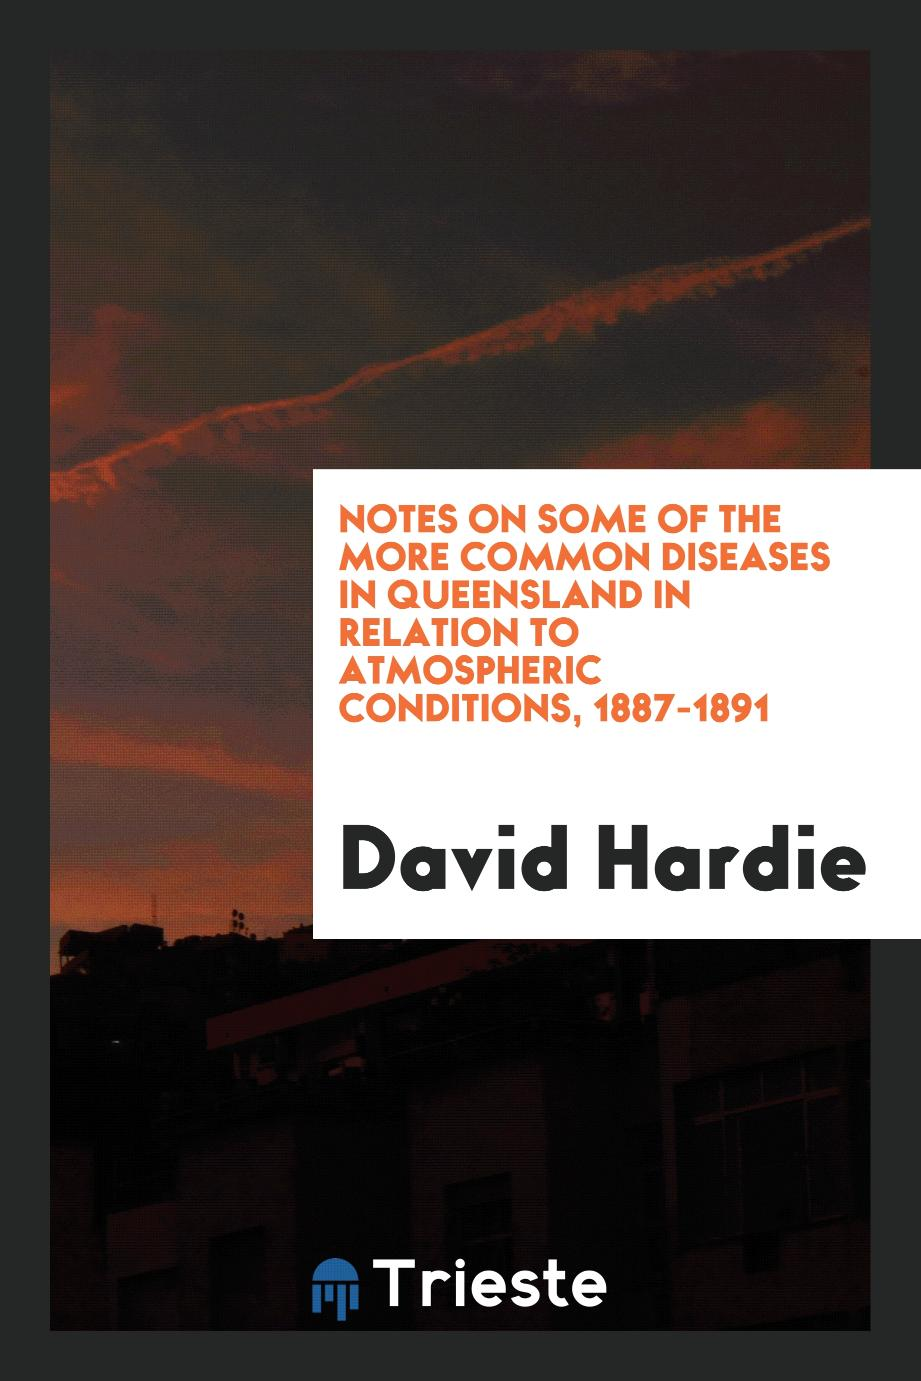 Notes on Some of the More Common Diseases in Queensland in Relation to Atmospheric Conditions, 1887-1891